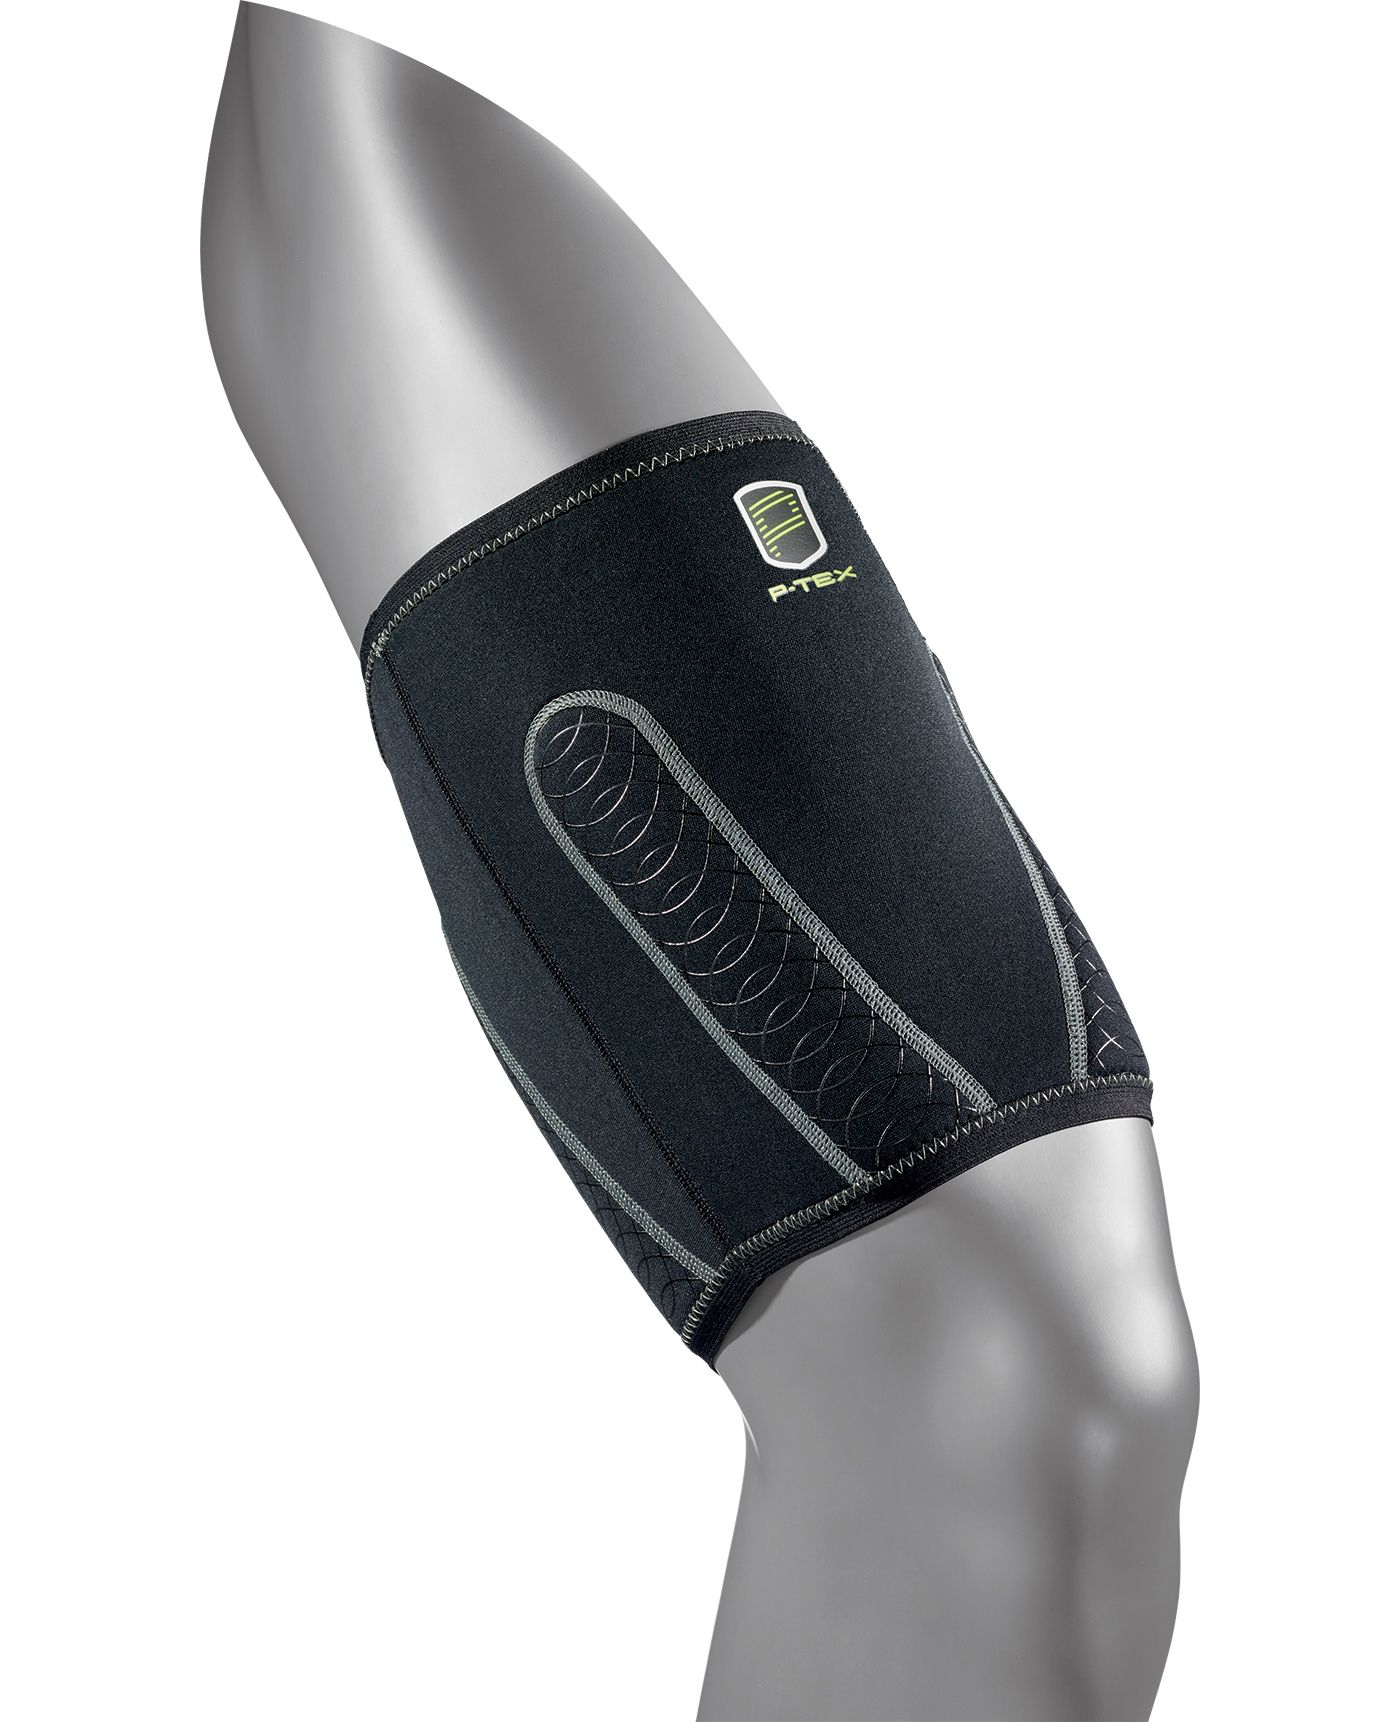 P-TEX PRO Thigh and Groin Support Sleeve